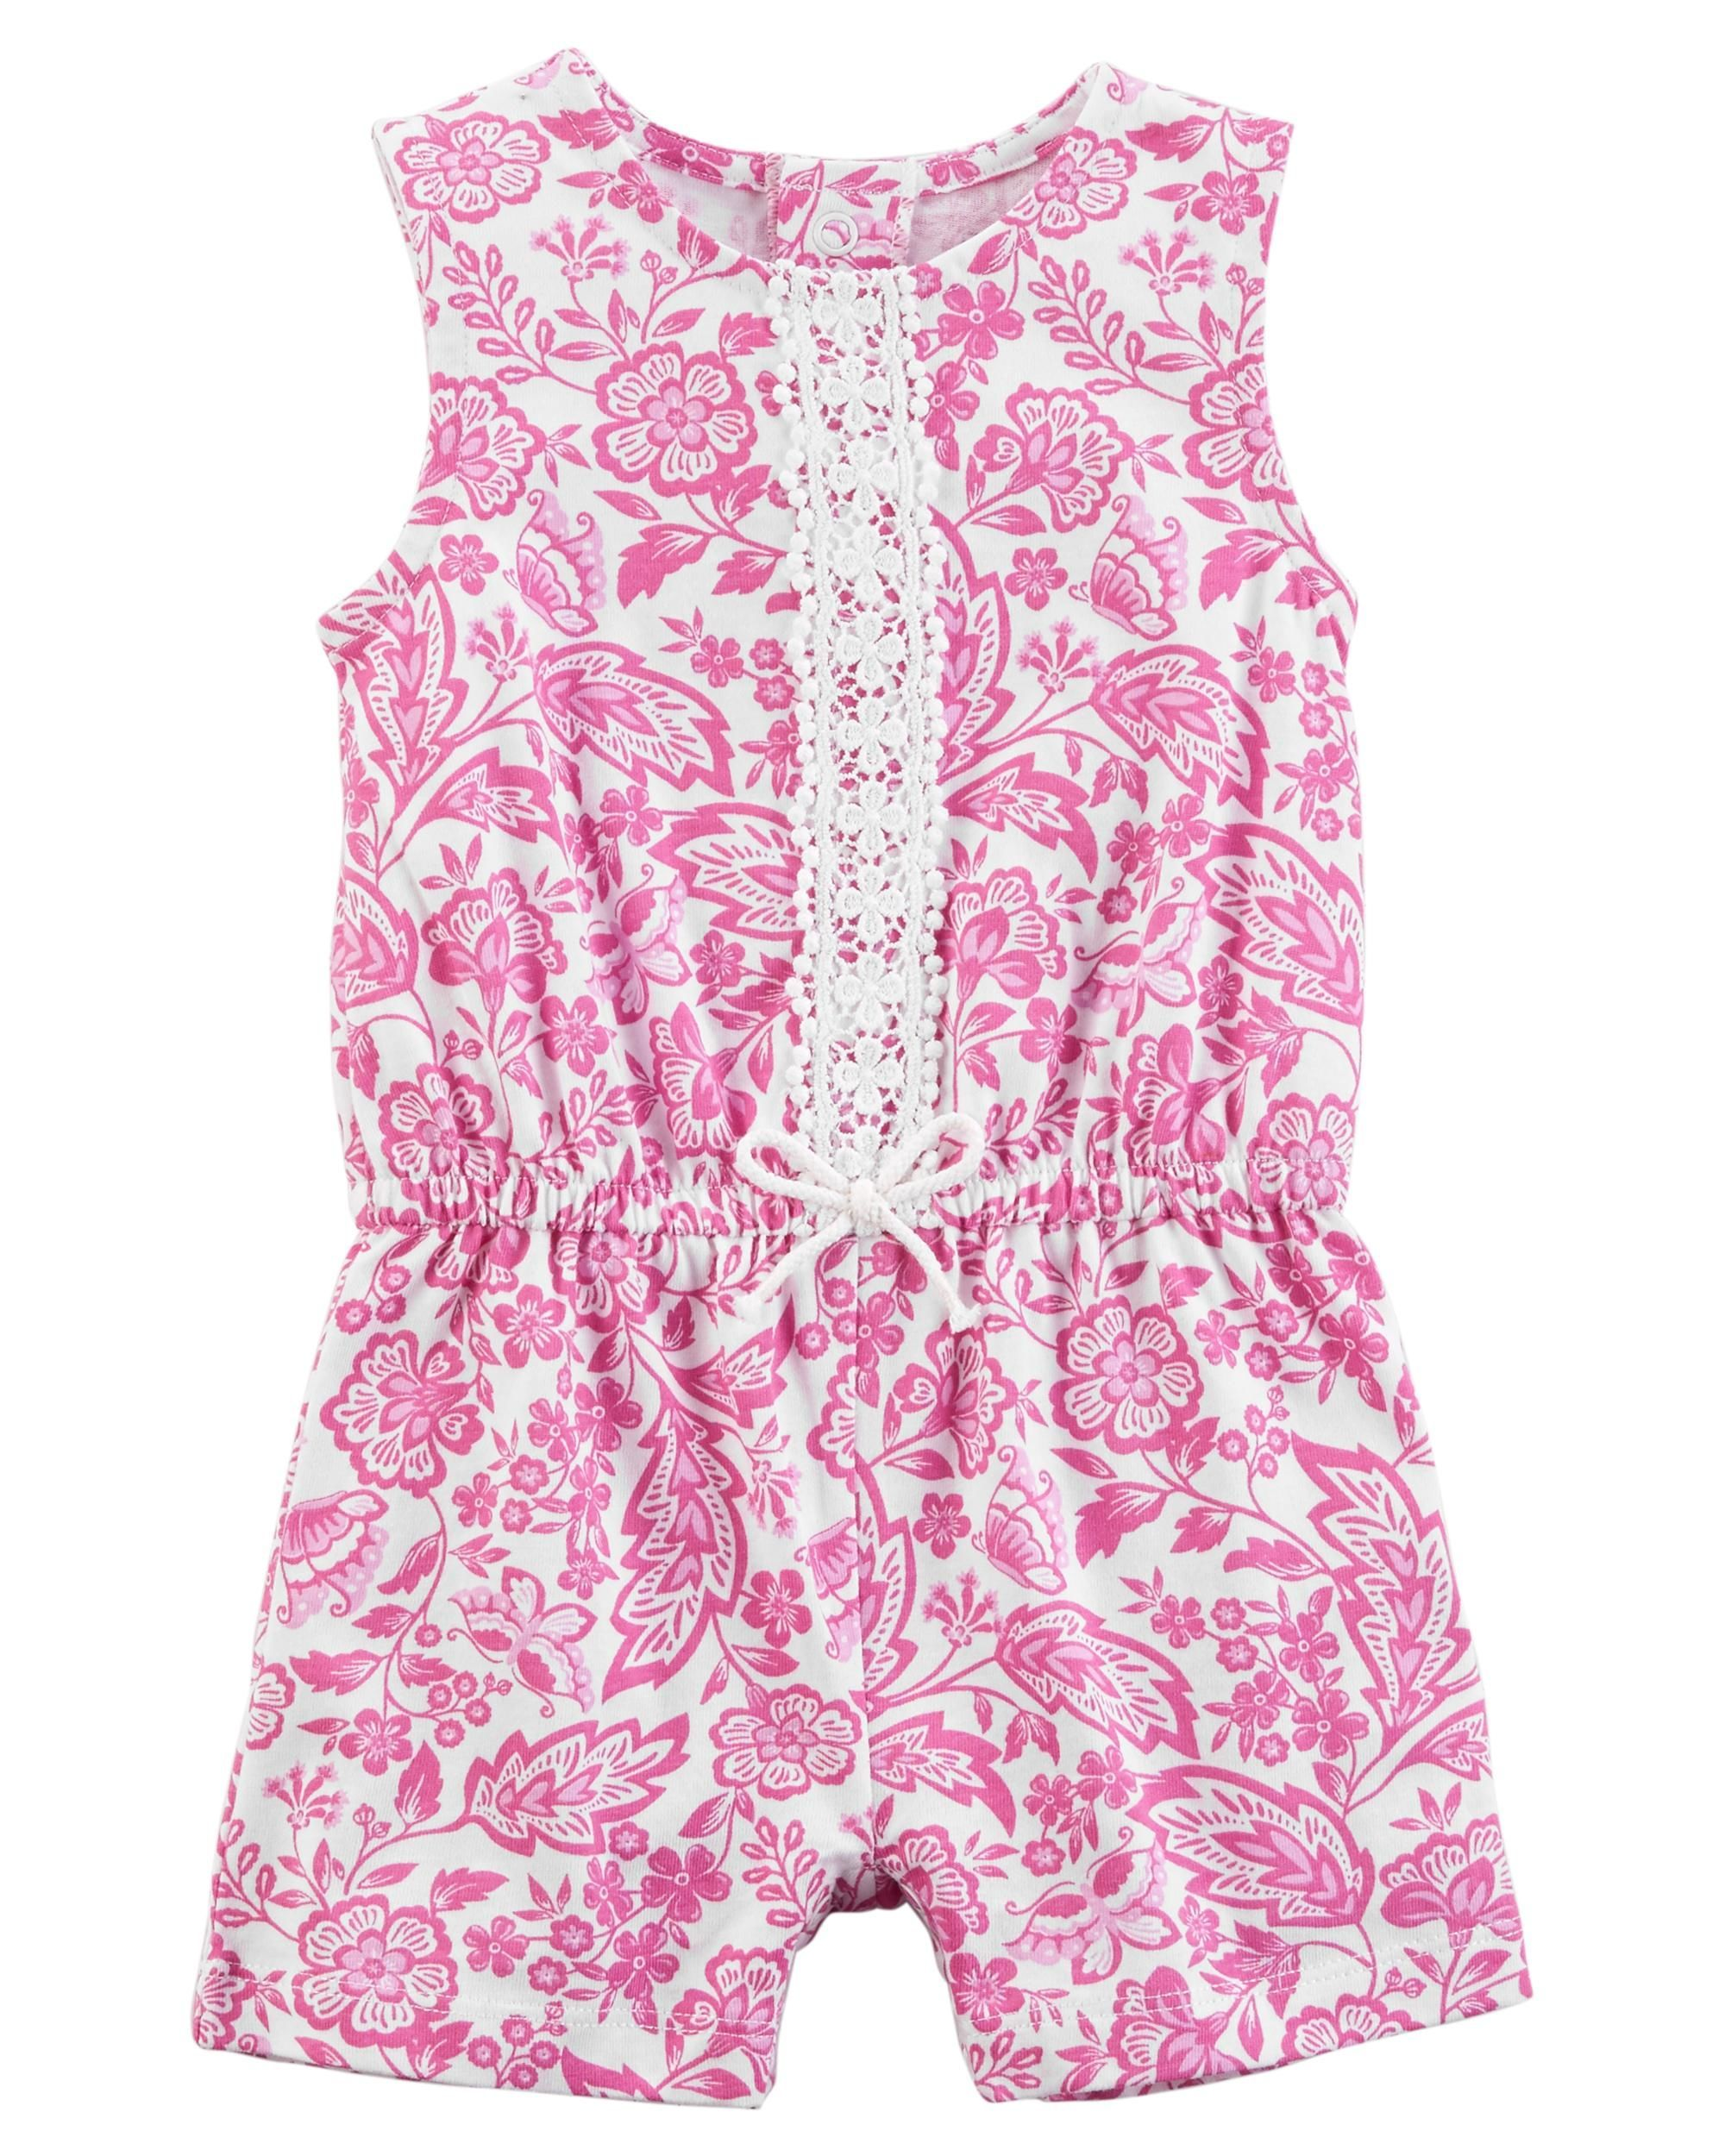 60c743d8d118 Baby Girl Lace Romper from Carters.com. Shop clothing   accessories from a  trusted